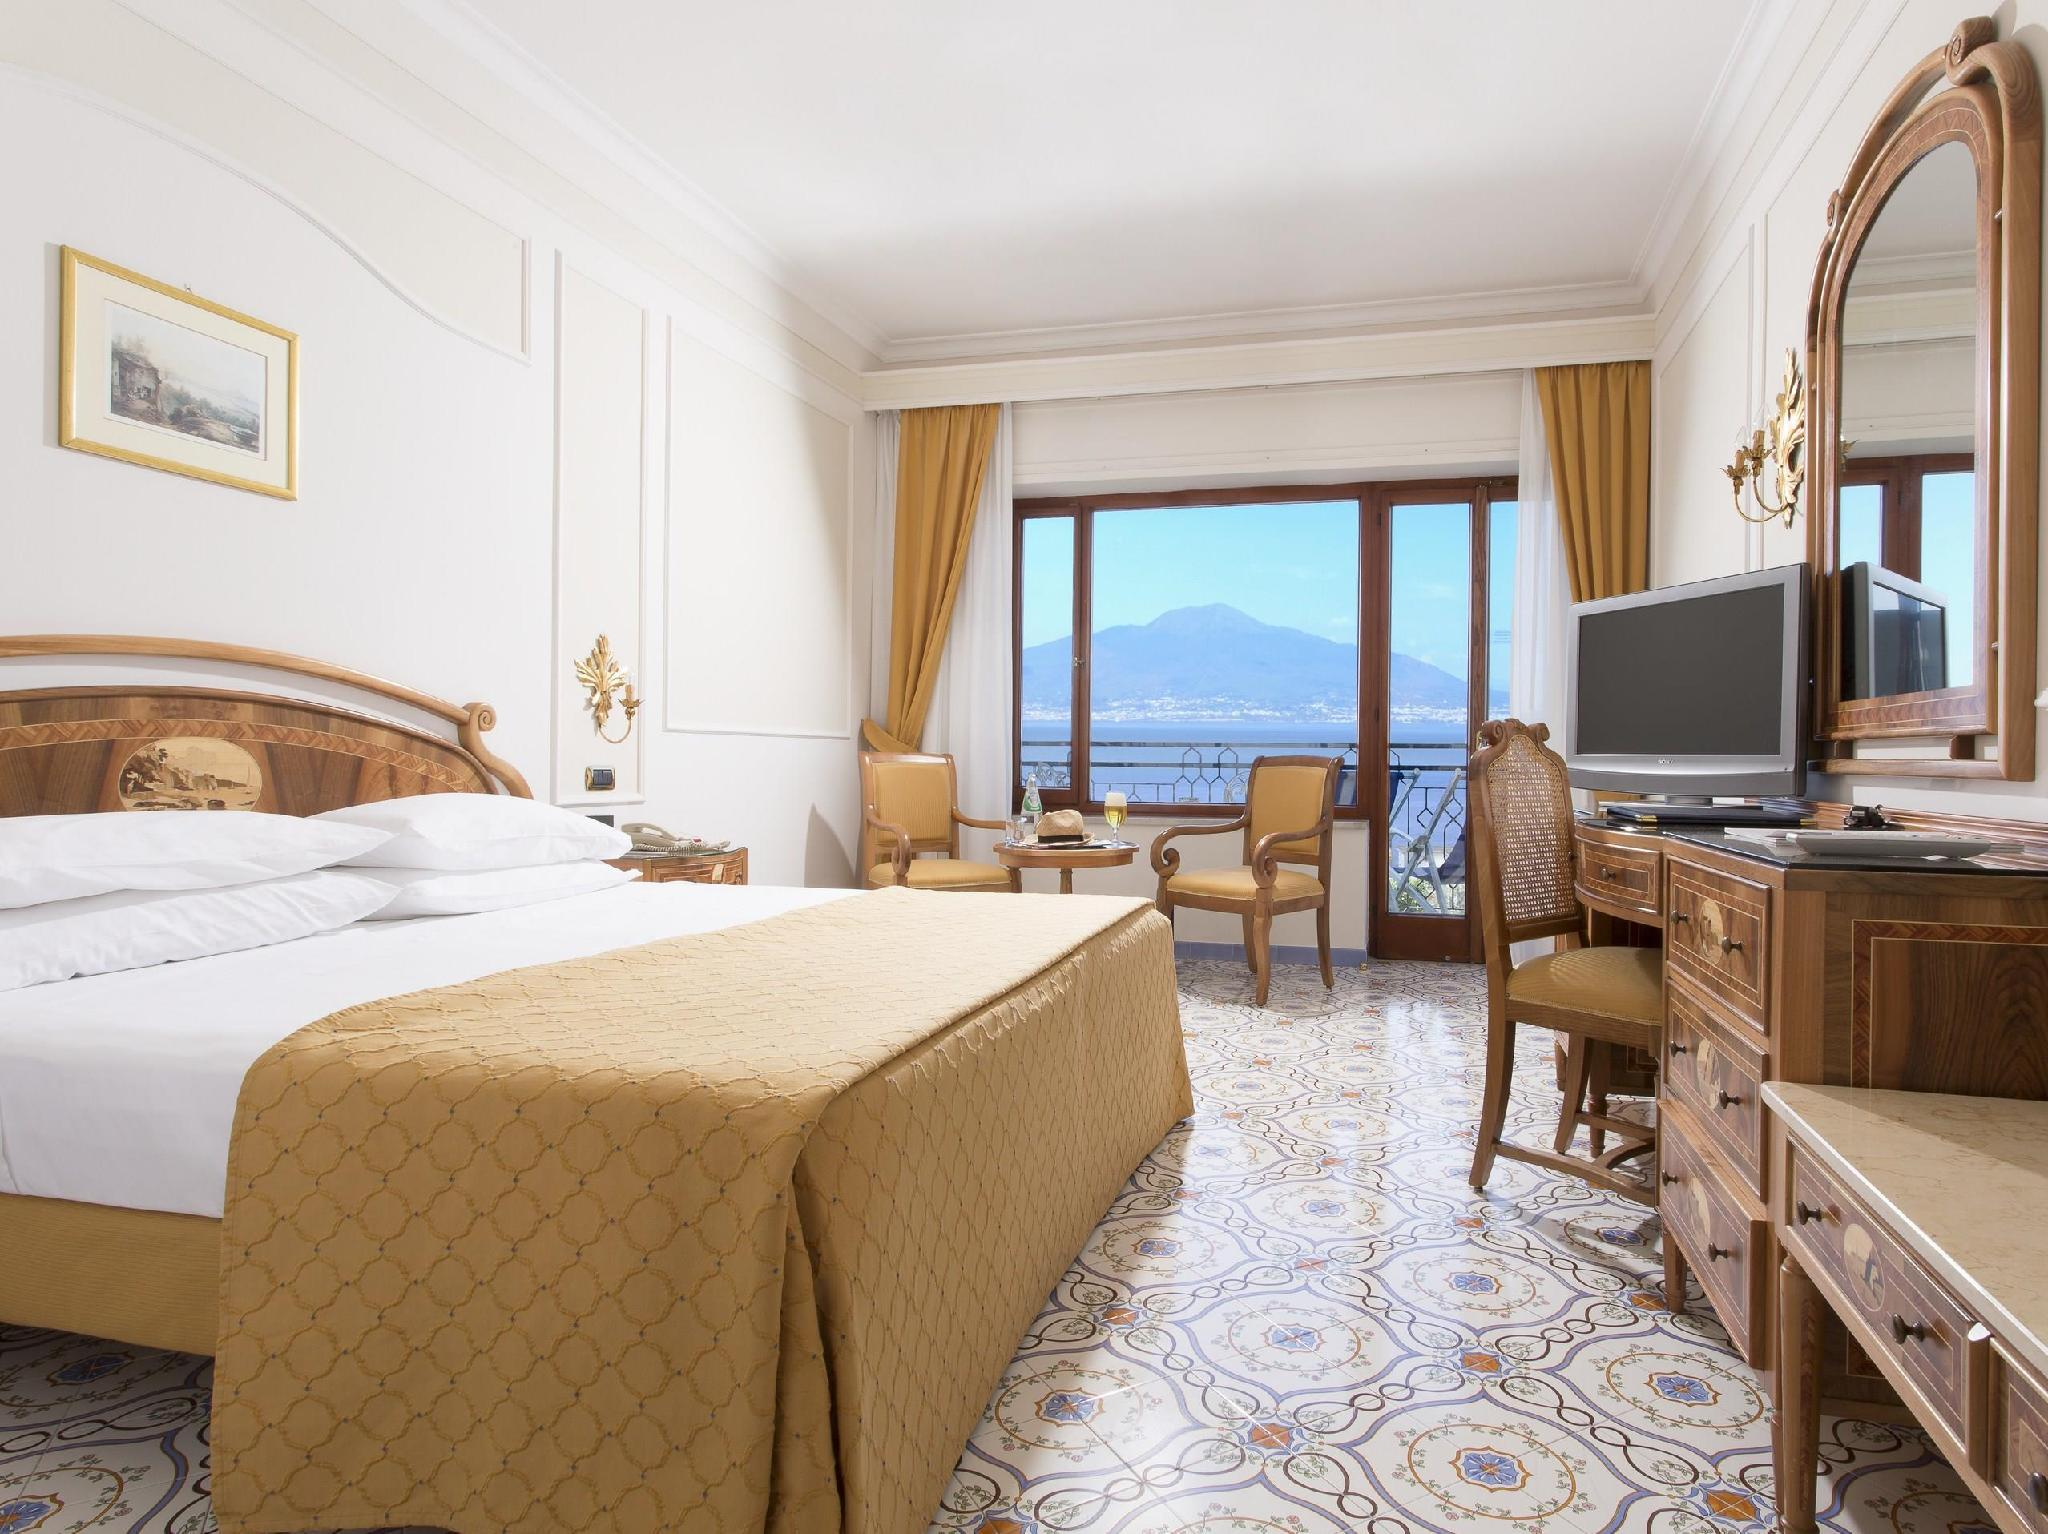 Çift Kişilik/İki Yataklı Premier Oda - Balkonlu (Premier Double or Twin Room with Balcony)